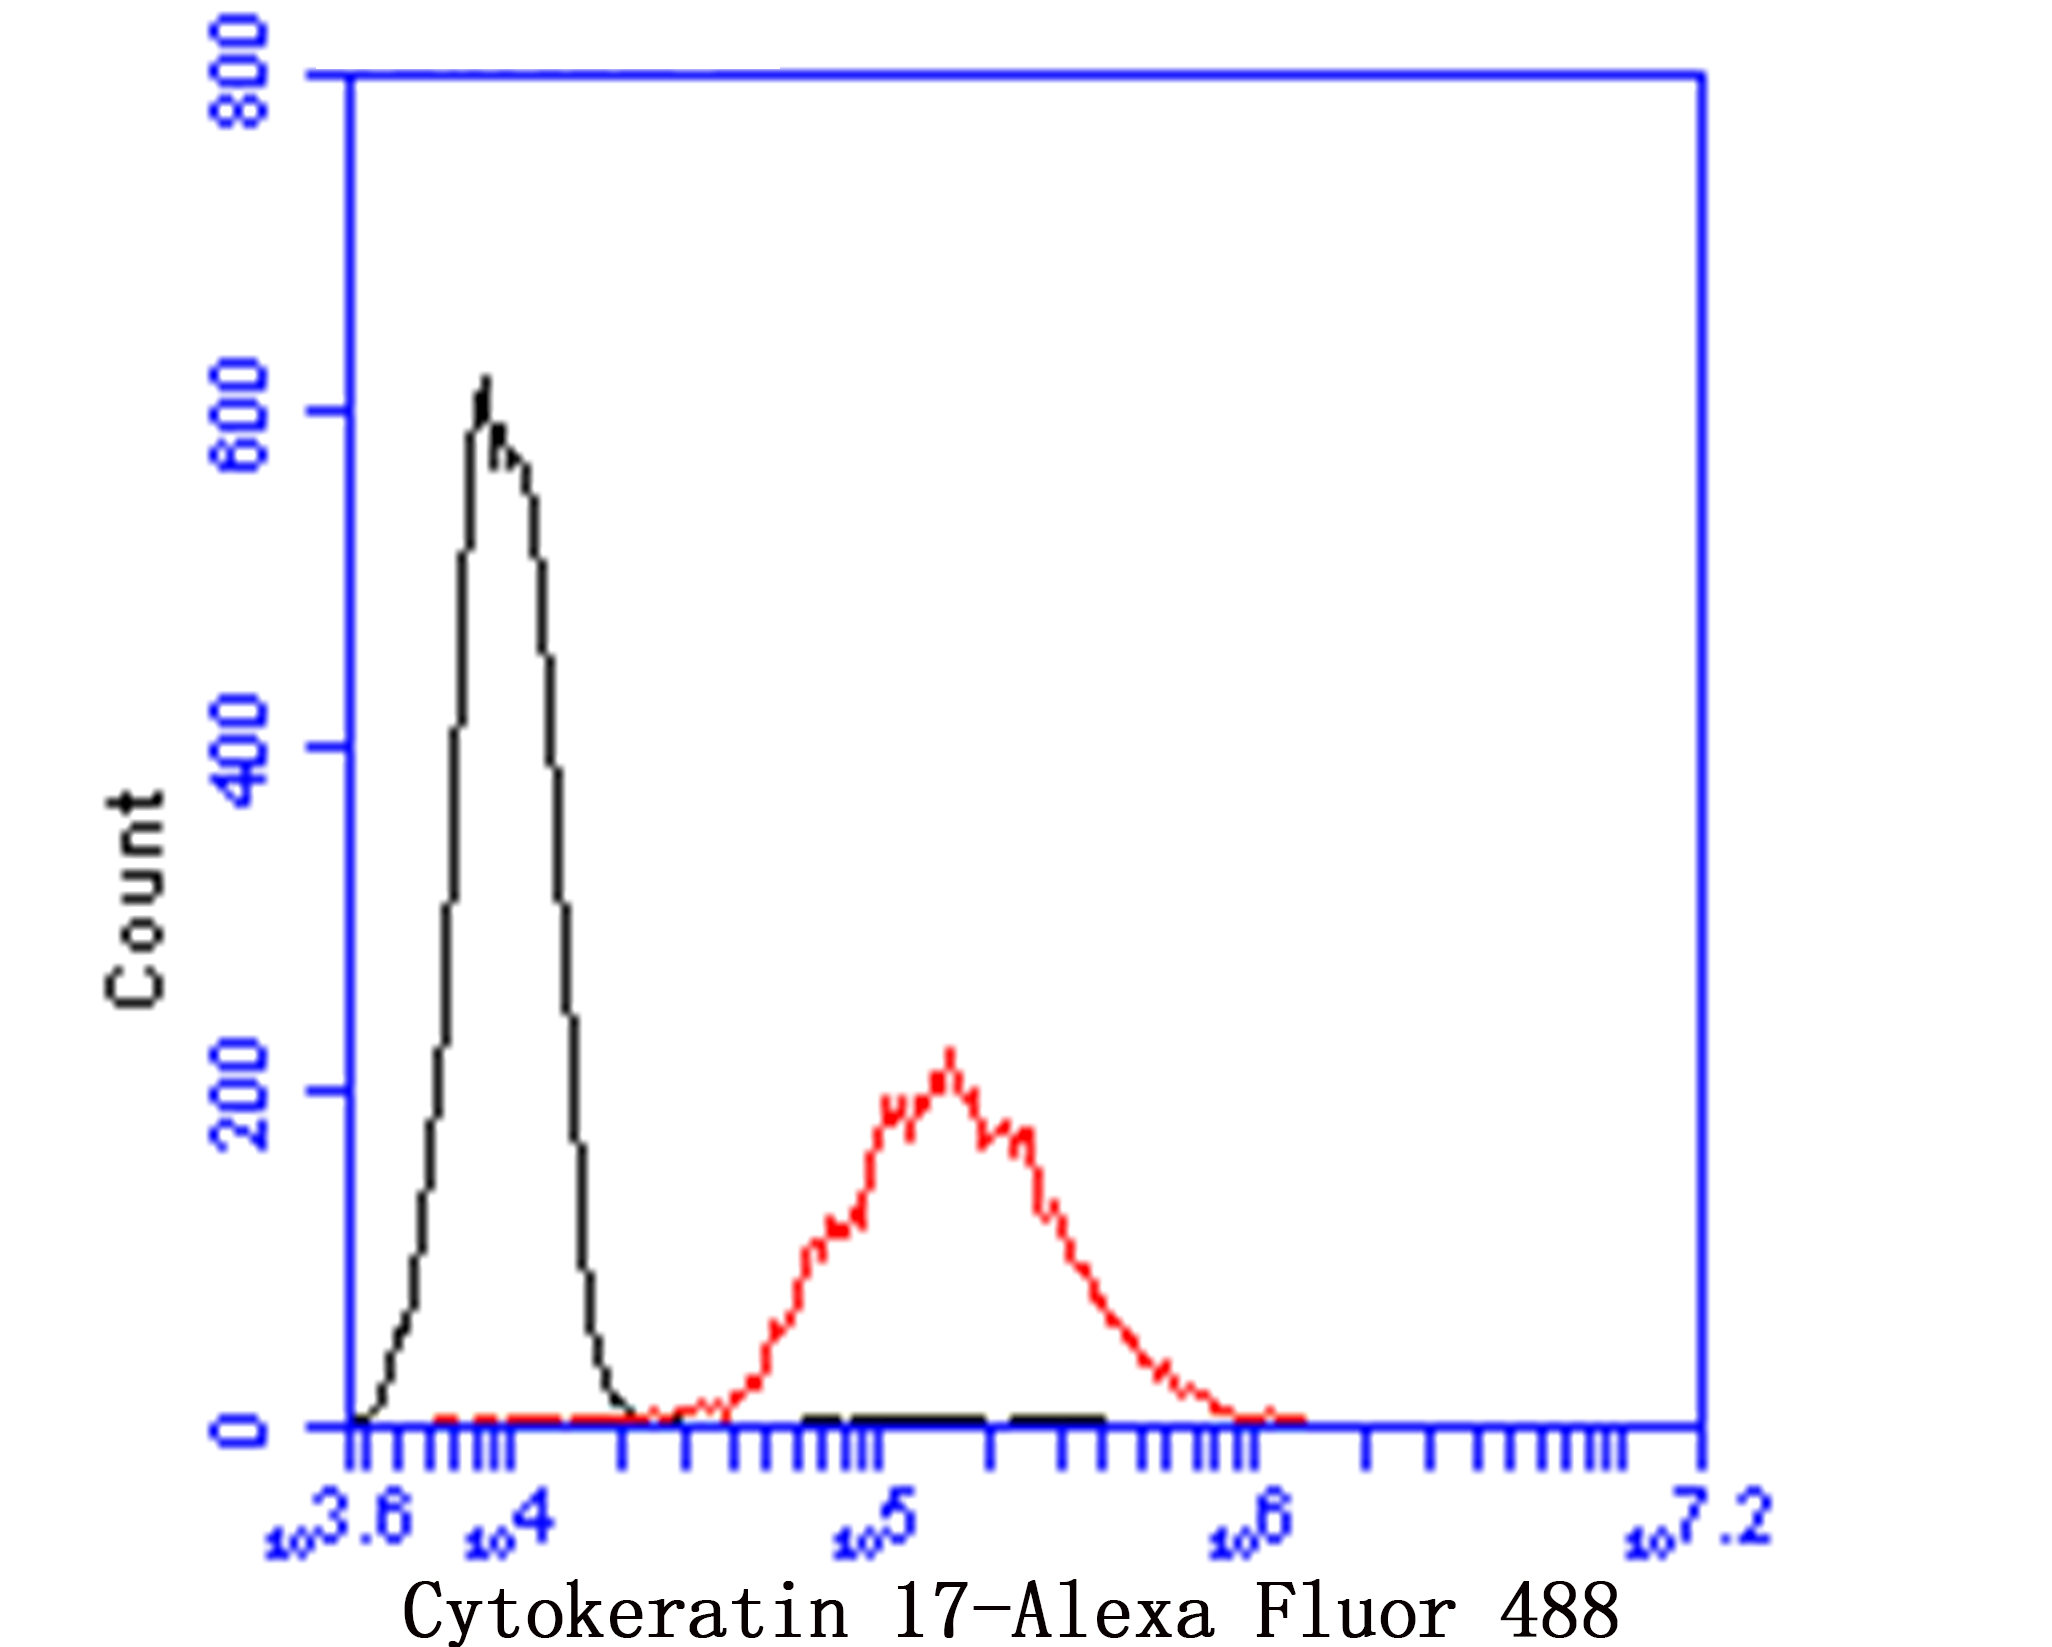 Flow cytometric analysis of Cytokeratin 17 was done on Hela cells. The cells were fixed, permeabilized and stained with MMP9 antibody at 1/100 dilution (red) compared with an unlabelled control (cells without incubation with primary antibody; black). After incubation of the primary antibody on room temperature for 1 hour, the cells was stained with a Alexa Fluor™ 488-conjugated goat anti-rabbit IgG Secondary antibody at 1/500 dilution for 30 minutes.